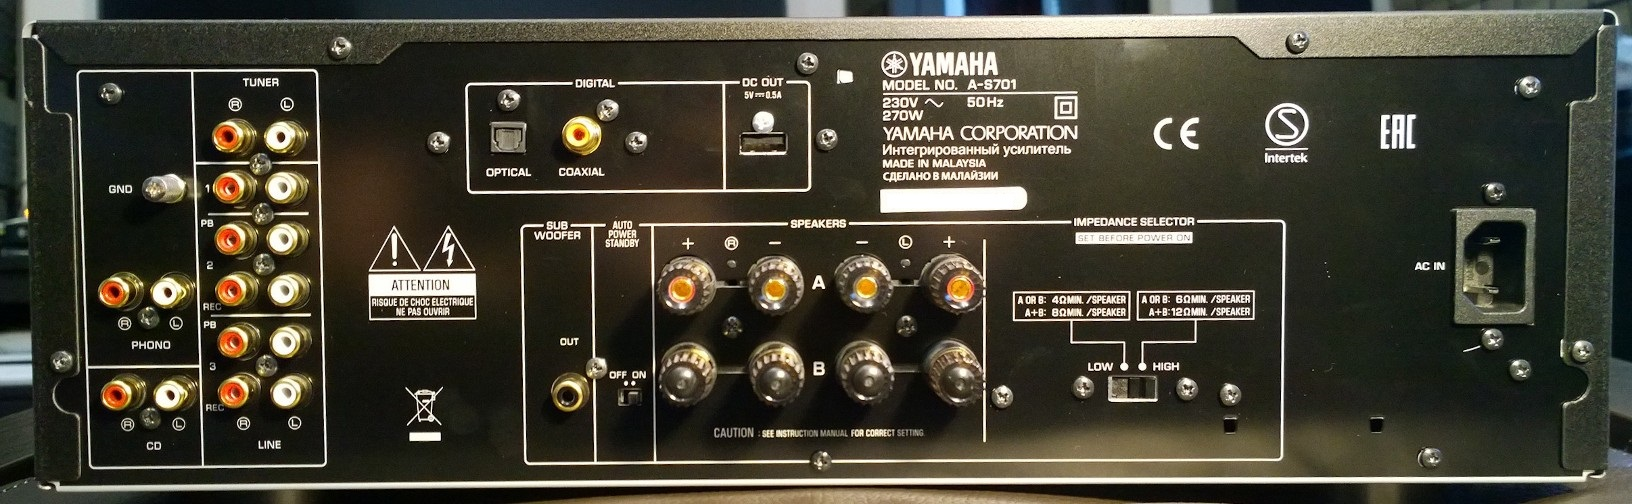 Yamaha A S701 Tear Down Thoughts About The Internals